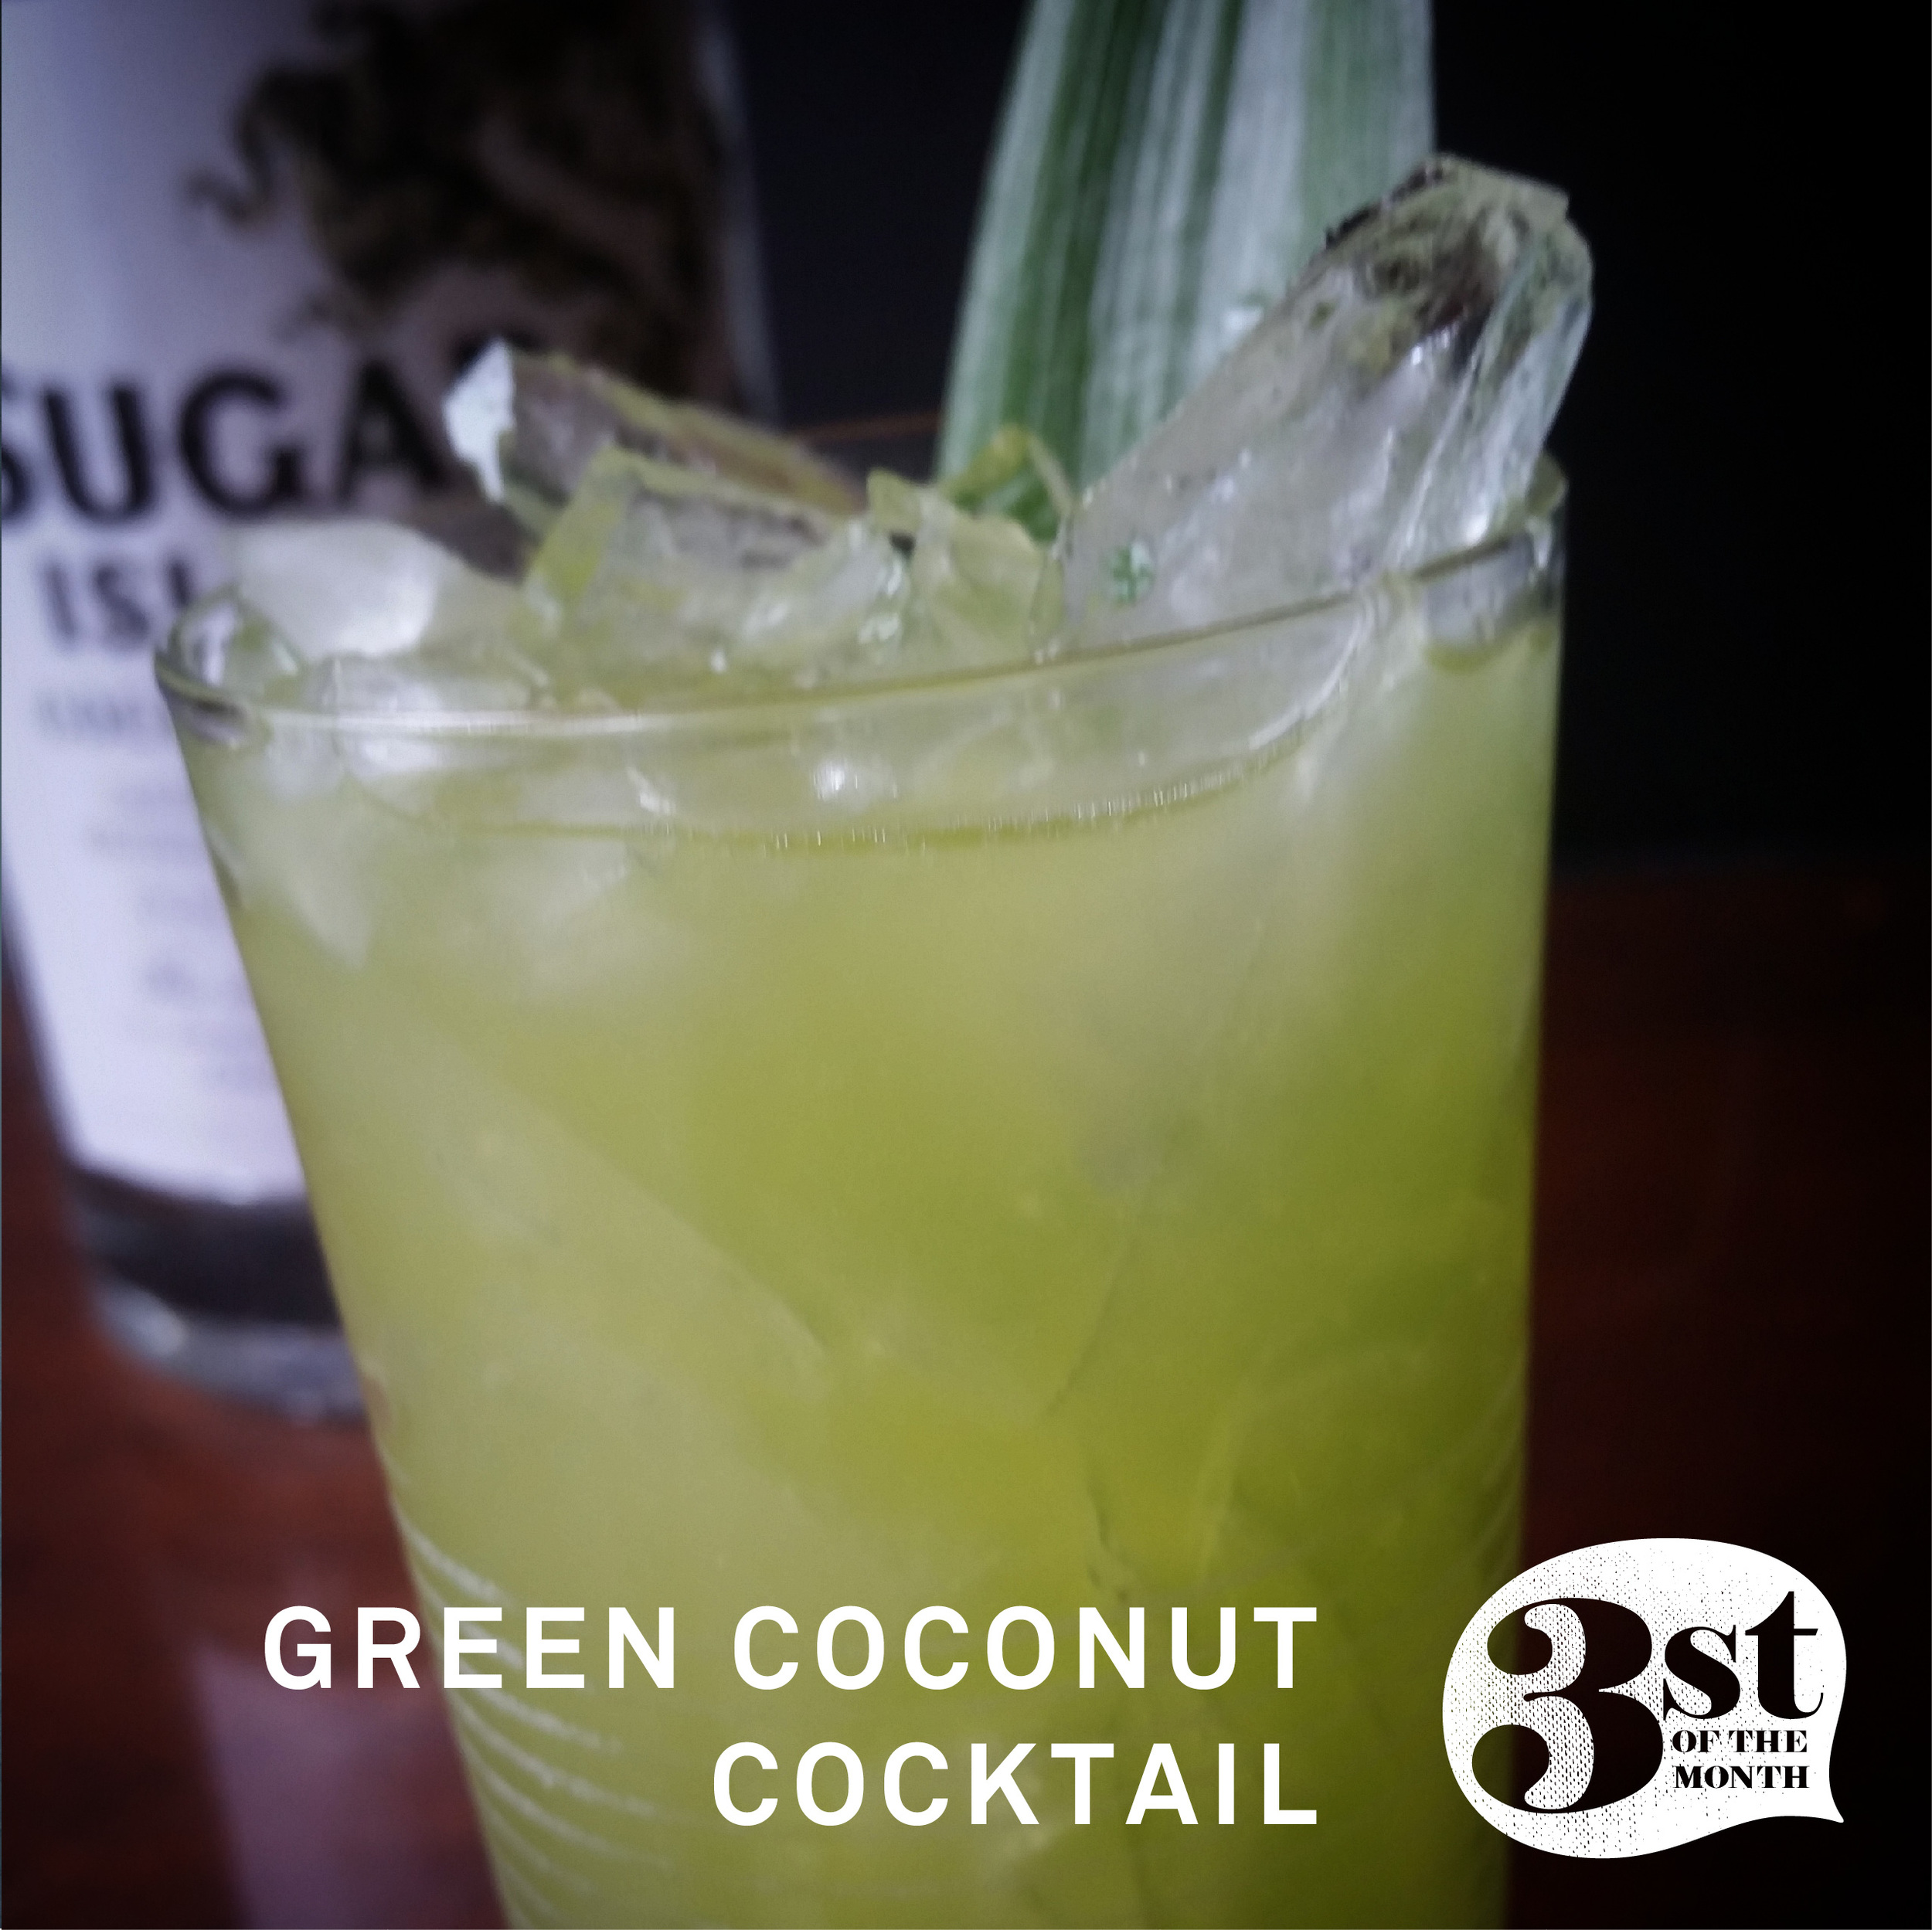 simple and delicious - the Green Coconut cocktail from 3st of the Month